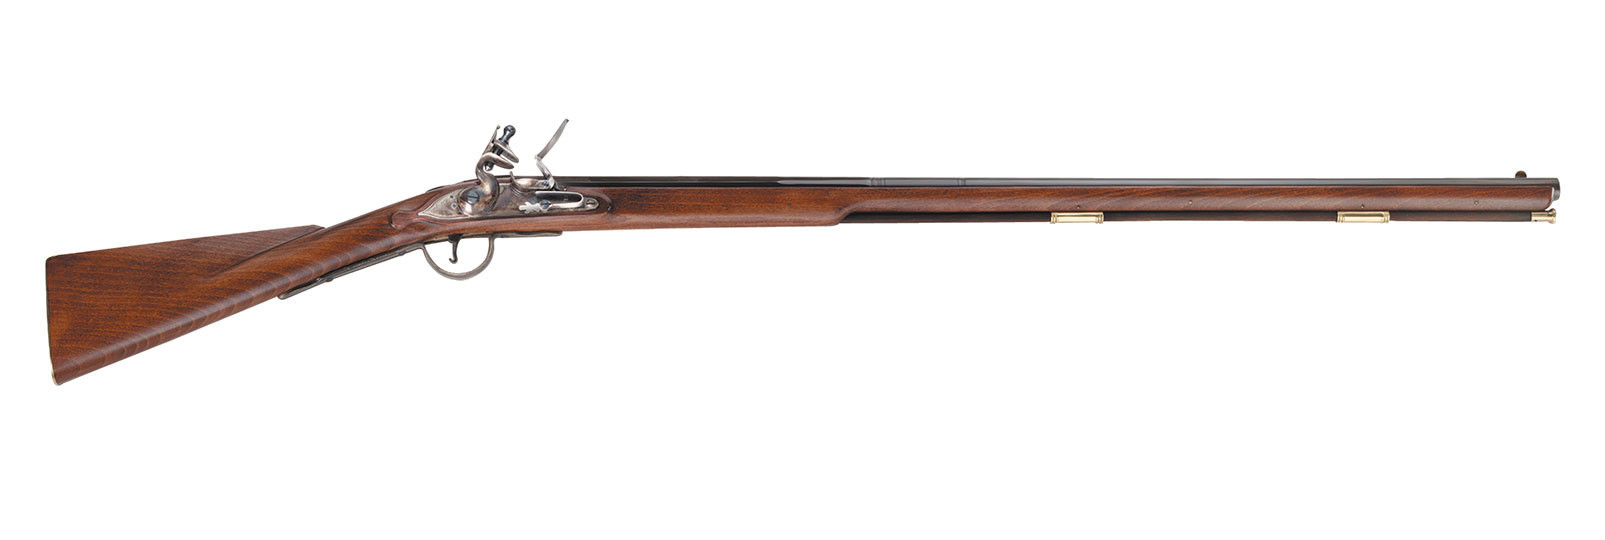 Indian trade musket cal. 20